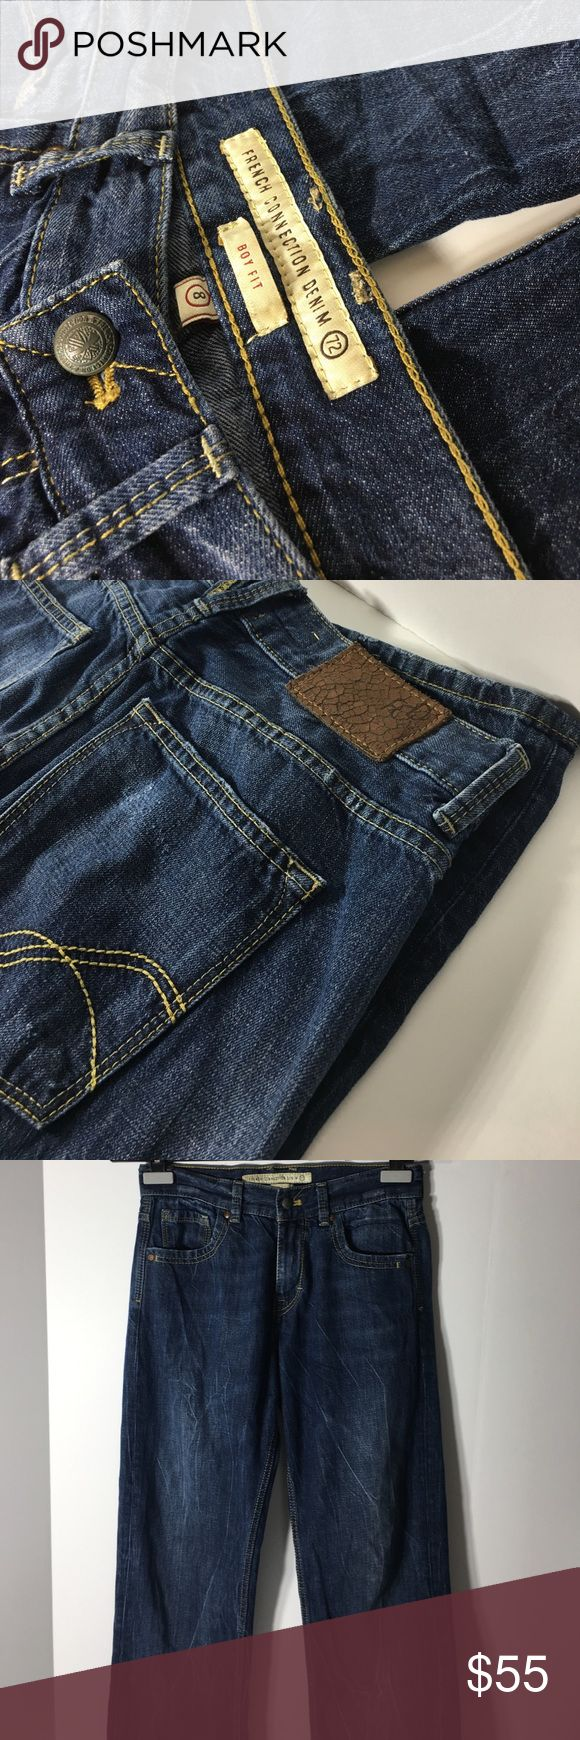 "French Connection Denim 72 Boy Fit - Size 8 100% Cotton.  Made in Turkey.  Approx measurements (Flat): Waist 14"".  Length 41"".  Please ask questions before purchasing.  Used Condition.  See pictures for virtual information.  Thank you for shopping by my closet.  Sparkles ✨ and Happy Poshing!  📌Only Fair Offers Considered French Connection Jeans"